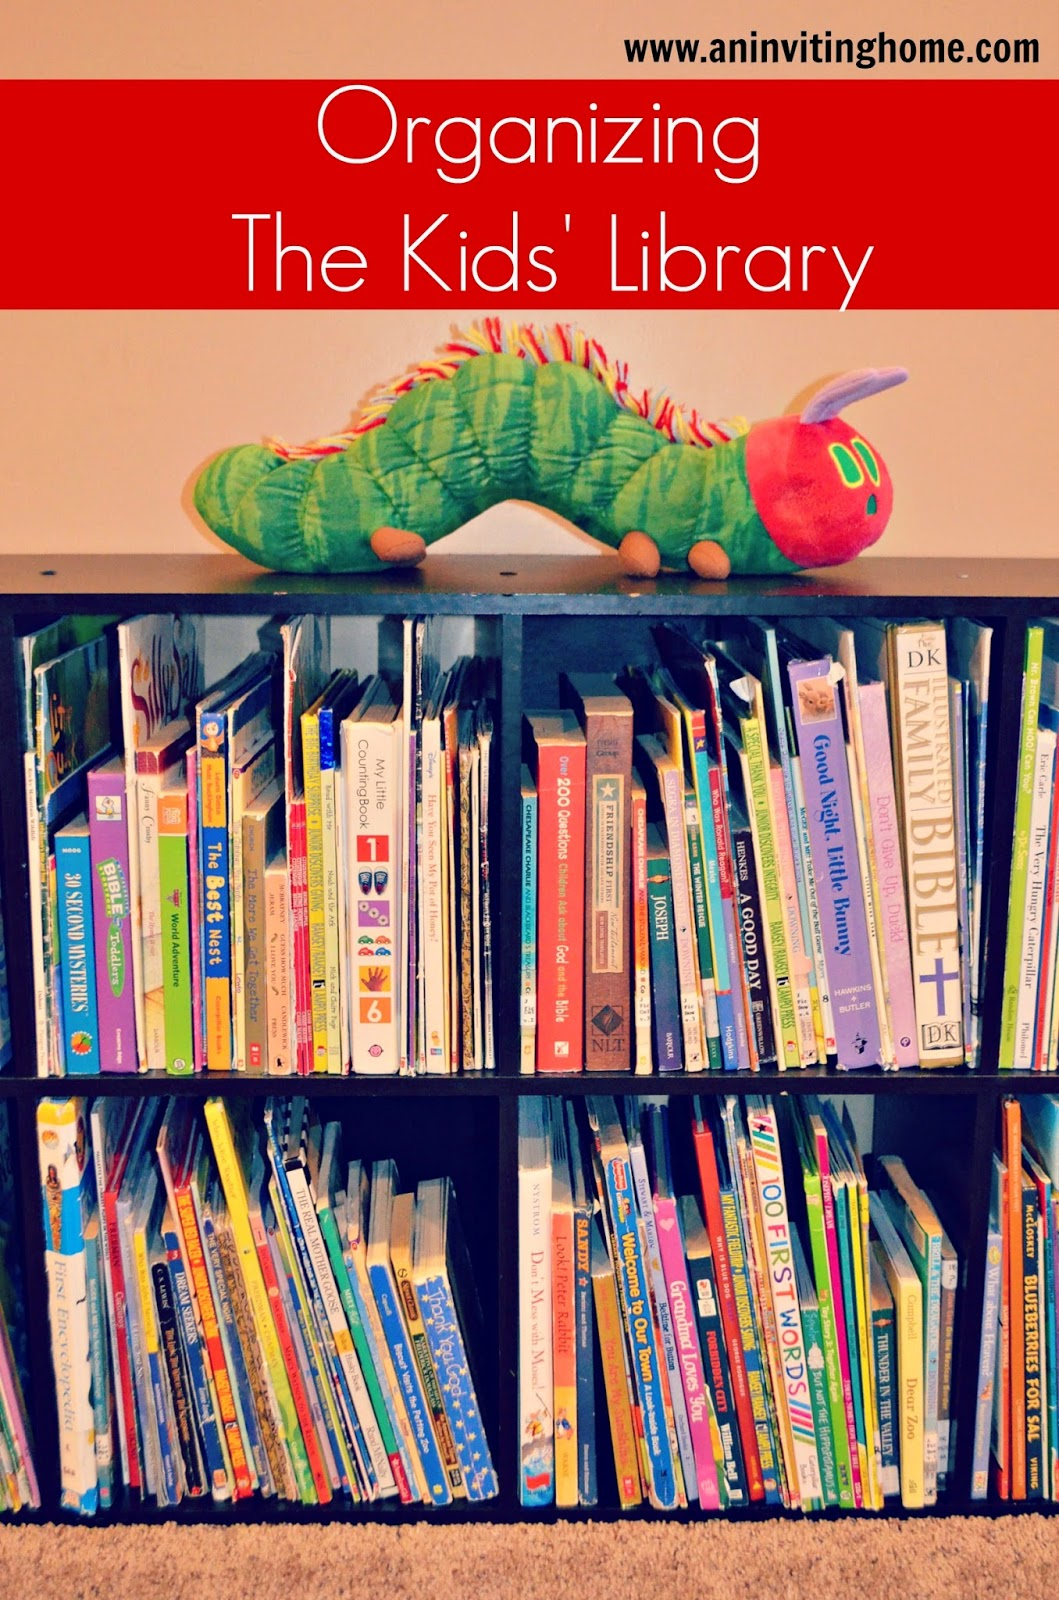 organizing the kids' library